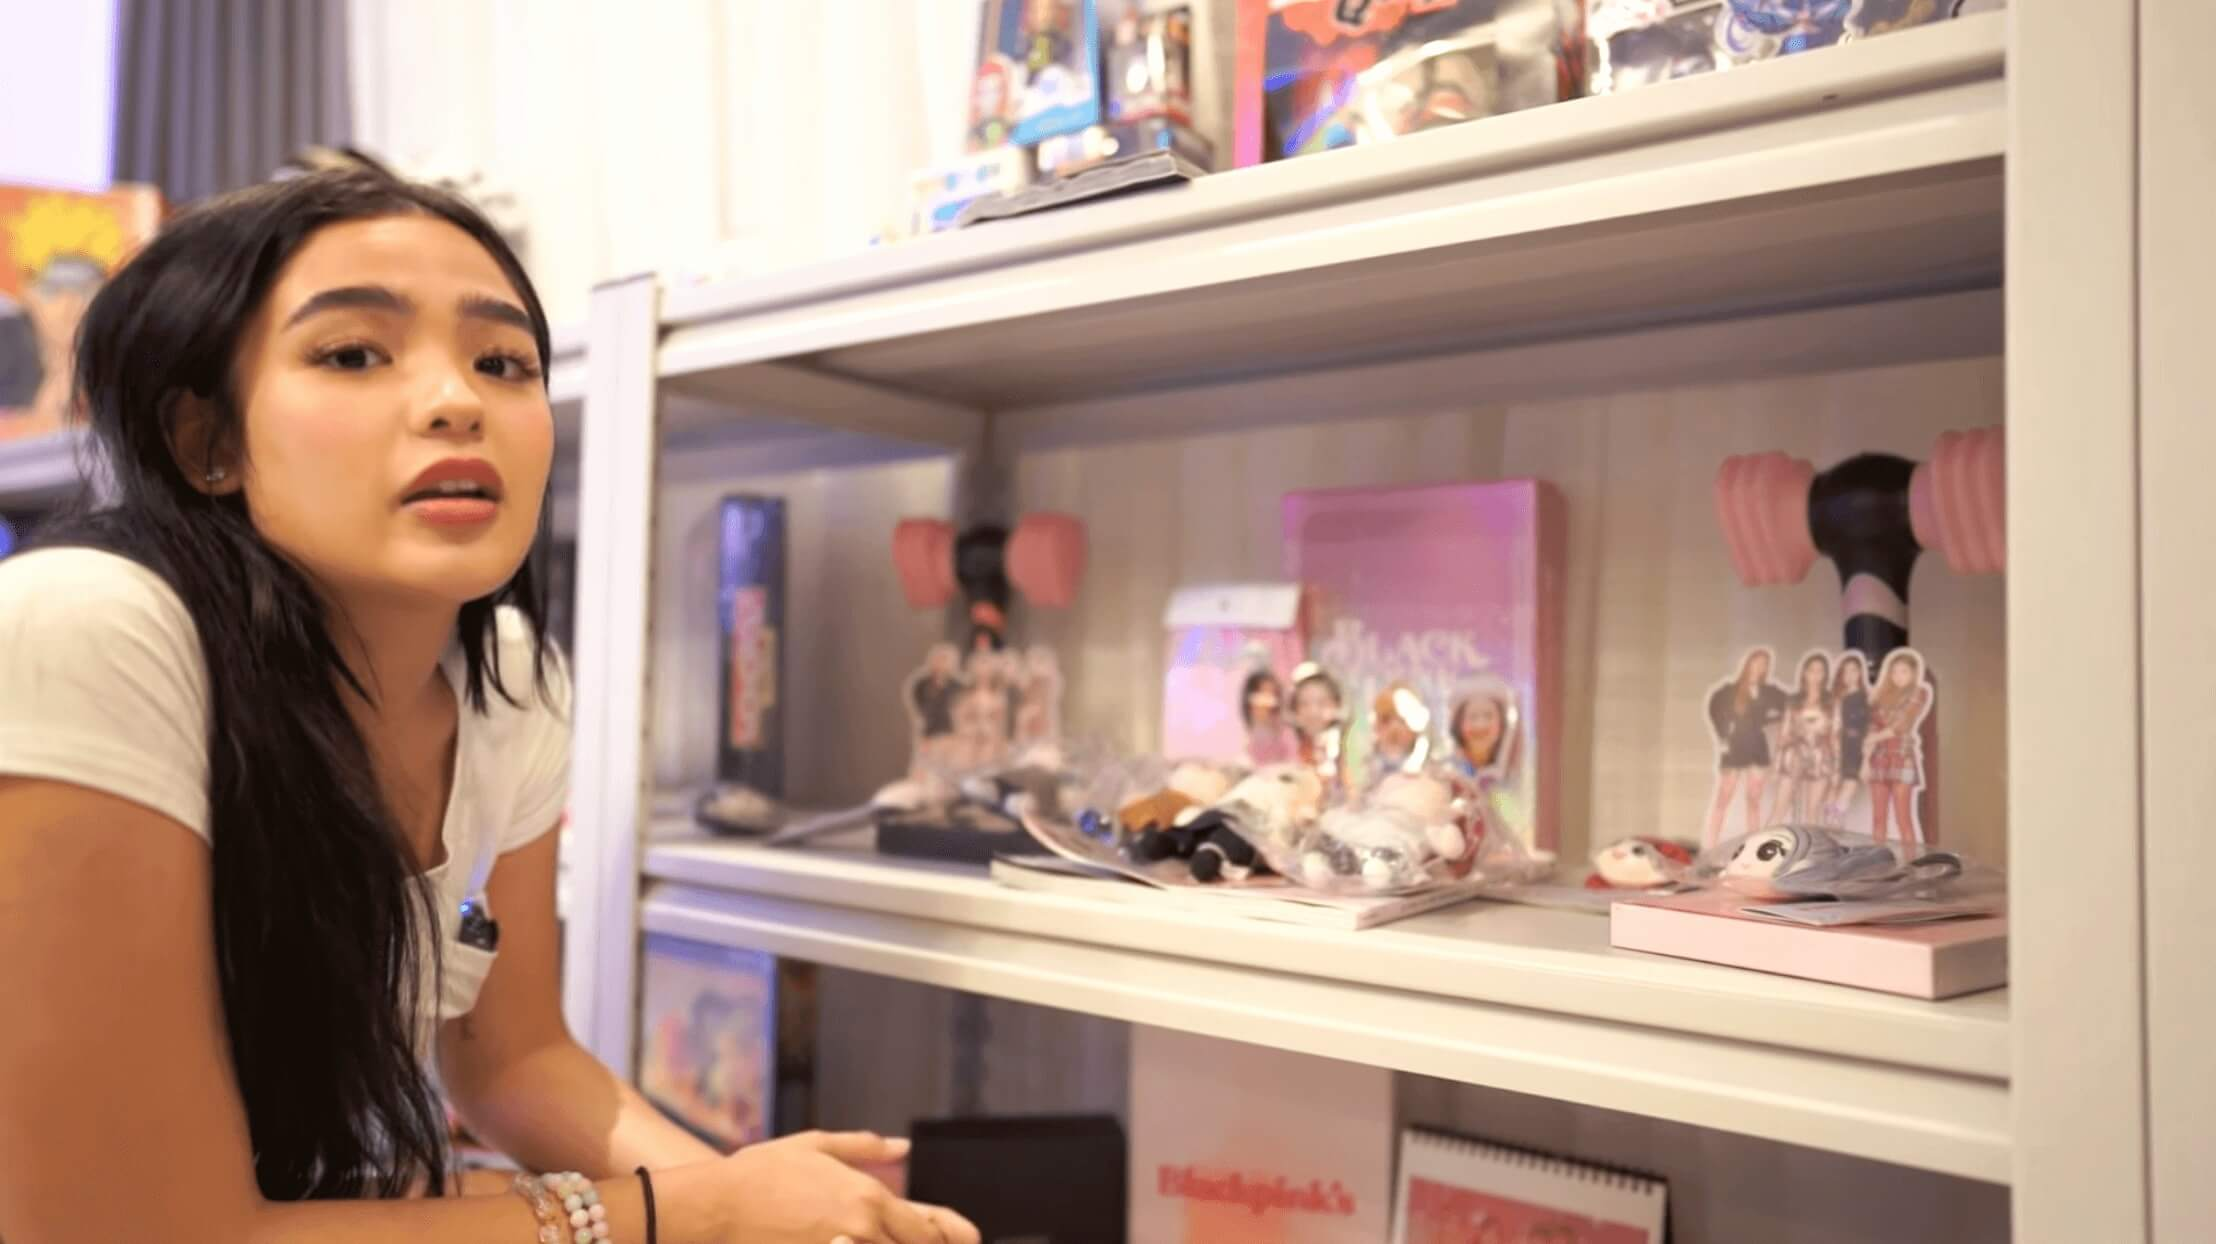 Andrea Brillantes is a fan of BLACKPINK and has a collection of lightsticks and other BLINK memorabilia displayed in her room